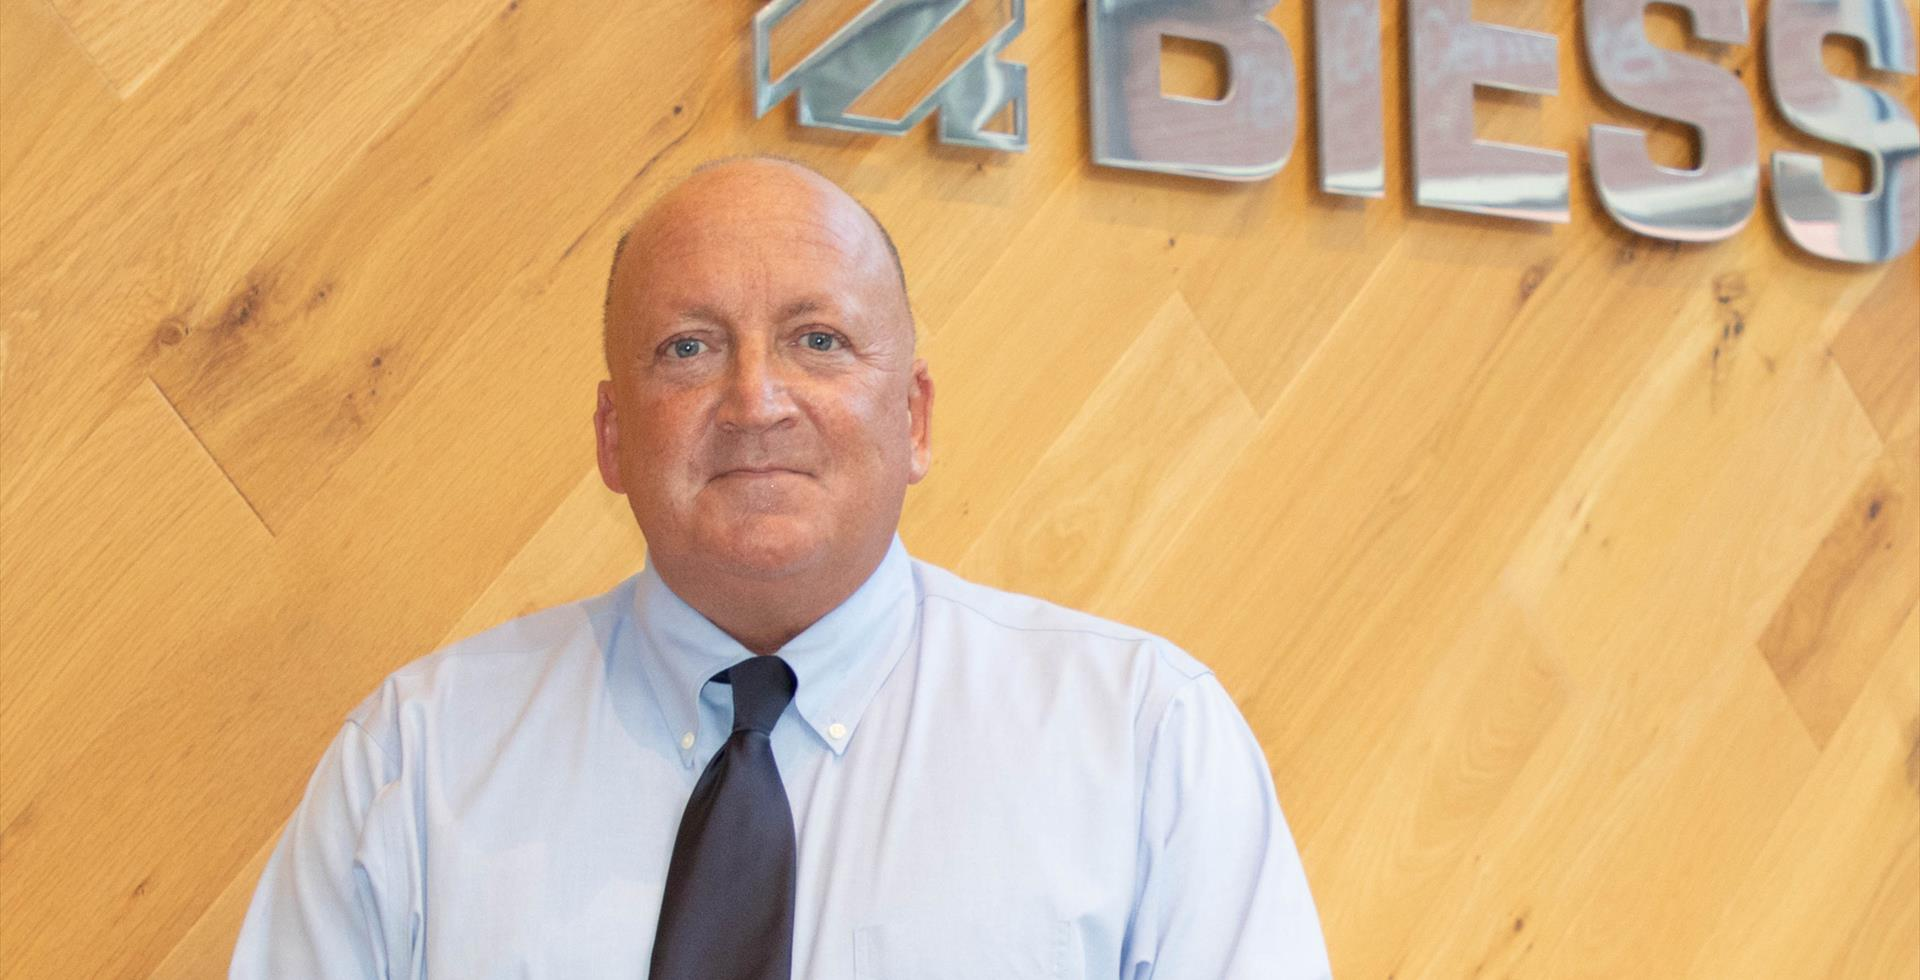 Tom Adelmann Joins Biesse America